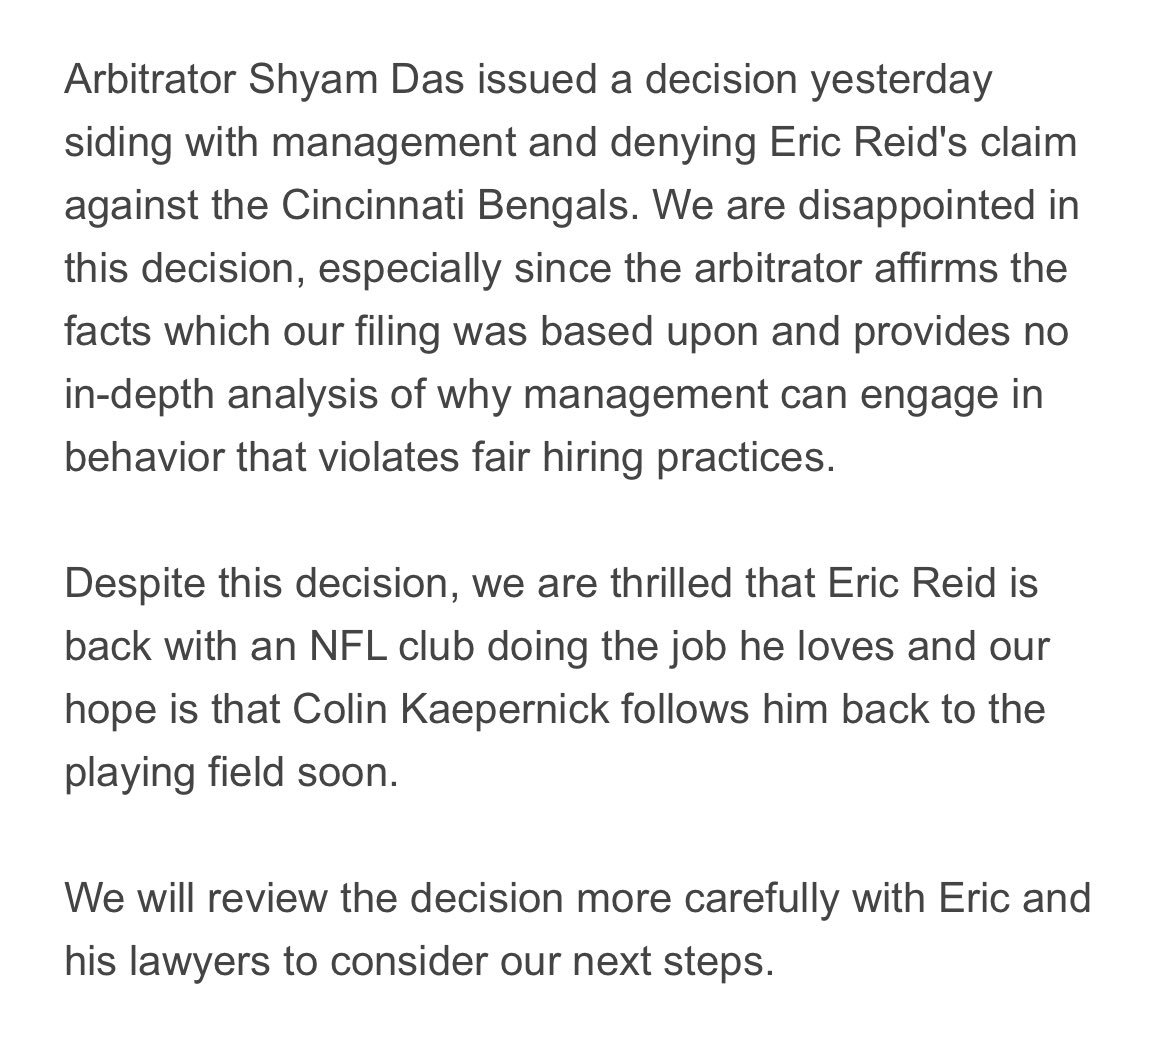 "NFLPA statement on the Eric Reid grievance ruling that @MikeGarafolo reported says it's disappointed, but thrilled Reid is on a team ""and our hope is that Colin Kaepernick follows him back to the playing field soon."""